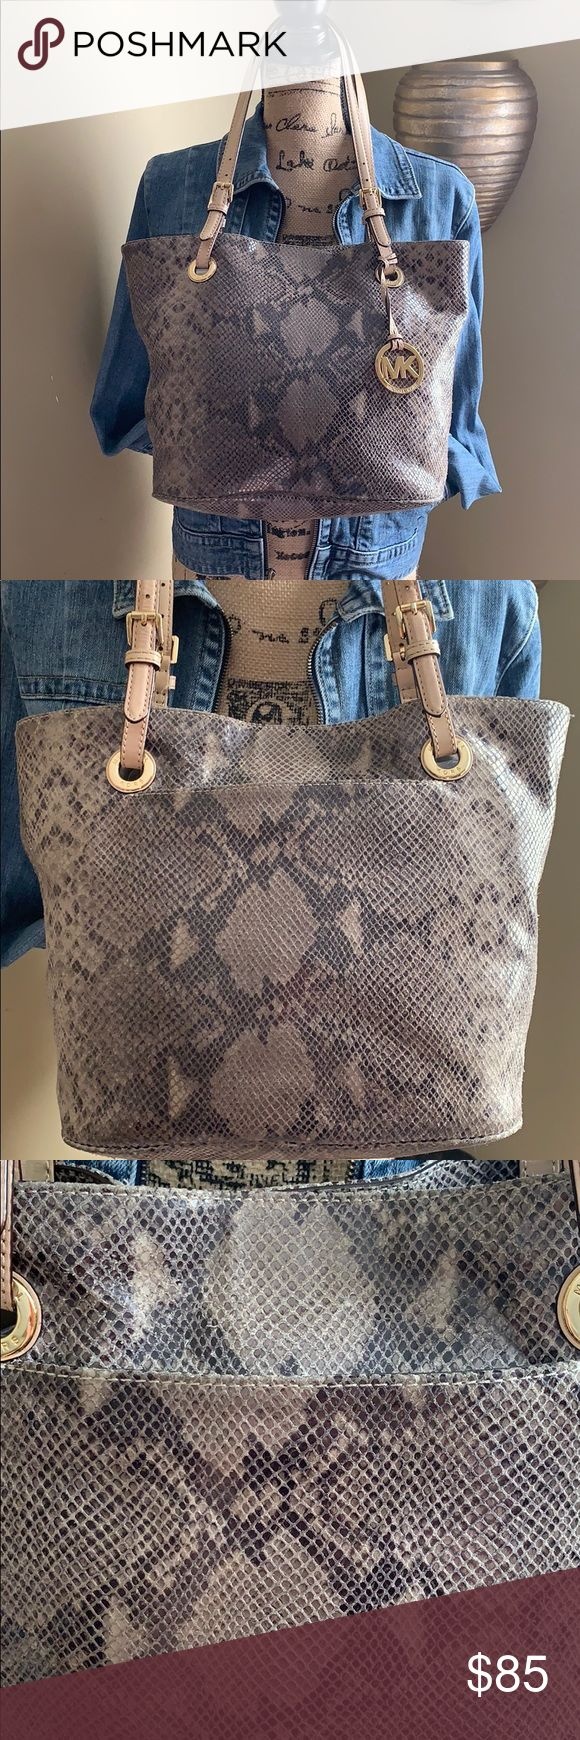 ✨👜✨Micheal Kors Phyton Leather Shoulder Tote Bag Good used condition some…